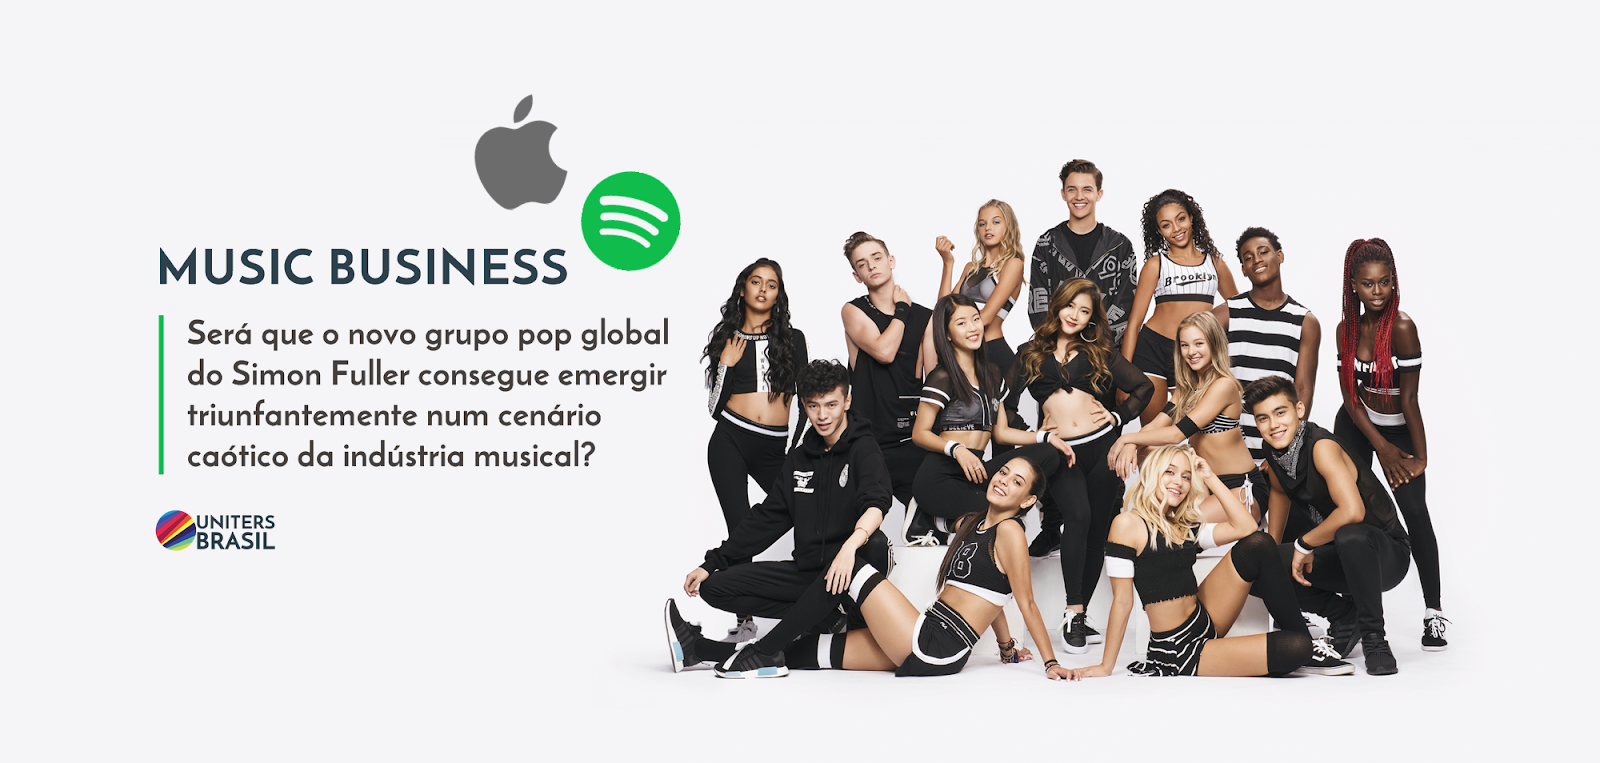 MUSIC BUSINESS: Será que o novo grupo pop global do Simon Fuller consegue emergir triunfantemente num cenário caótico da indústria musical?